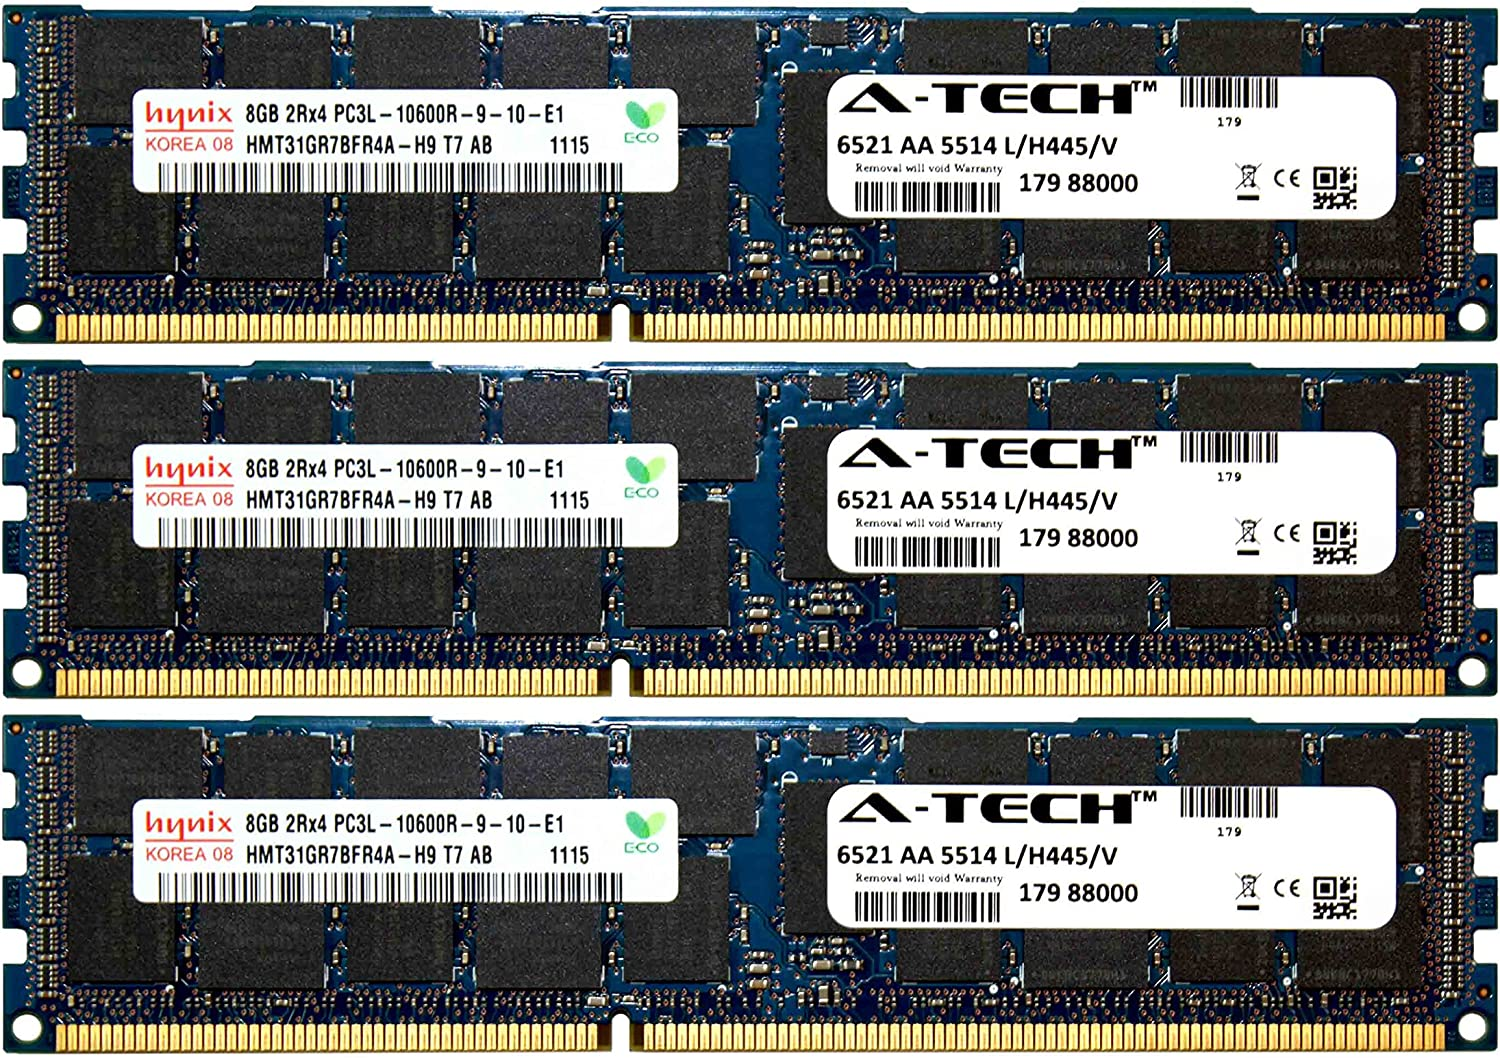 A-Tech Hynix 24GB Kit 3X 8GB PC3-10600 1.35V for Dell Precision Workstation Snpp9rn2c/8g A2626072 A2626093 A2862069 A2862074 A3721482 T5600 T7500 T7600 T5500 T5600 T7500 T7600 T5500 Memory RAM